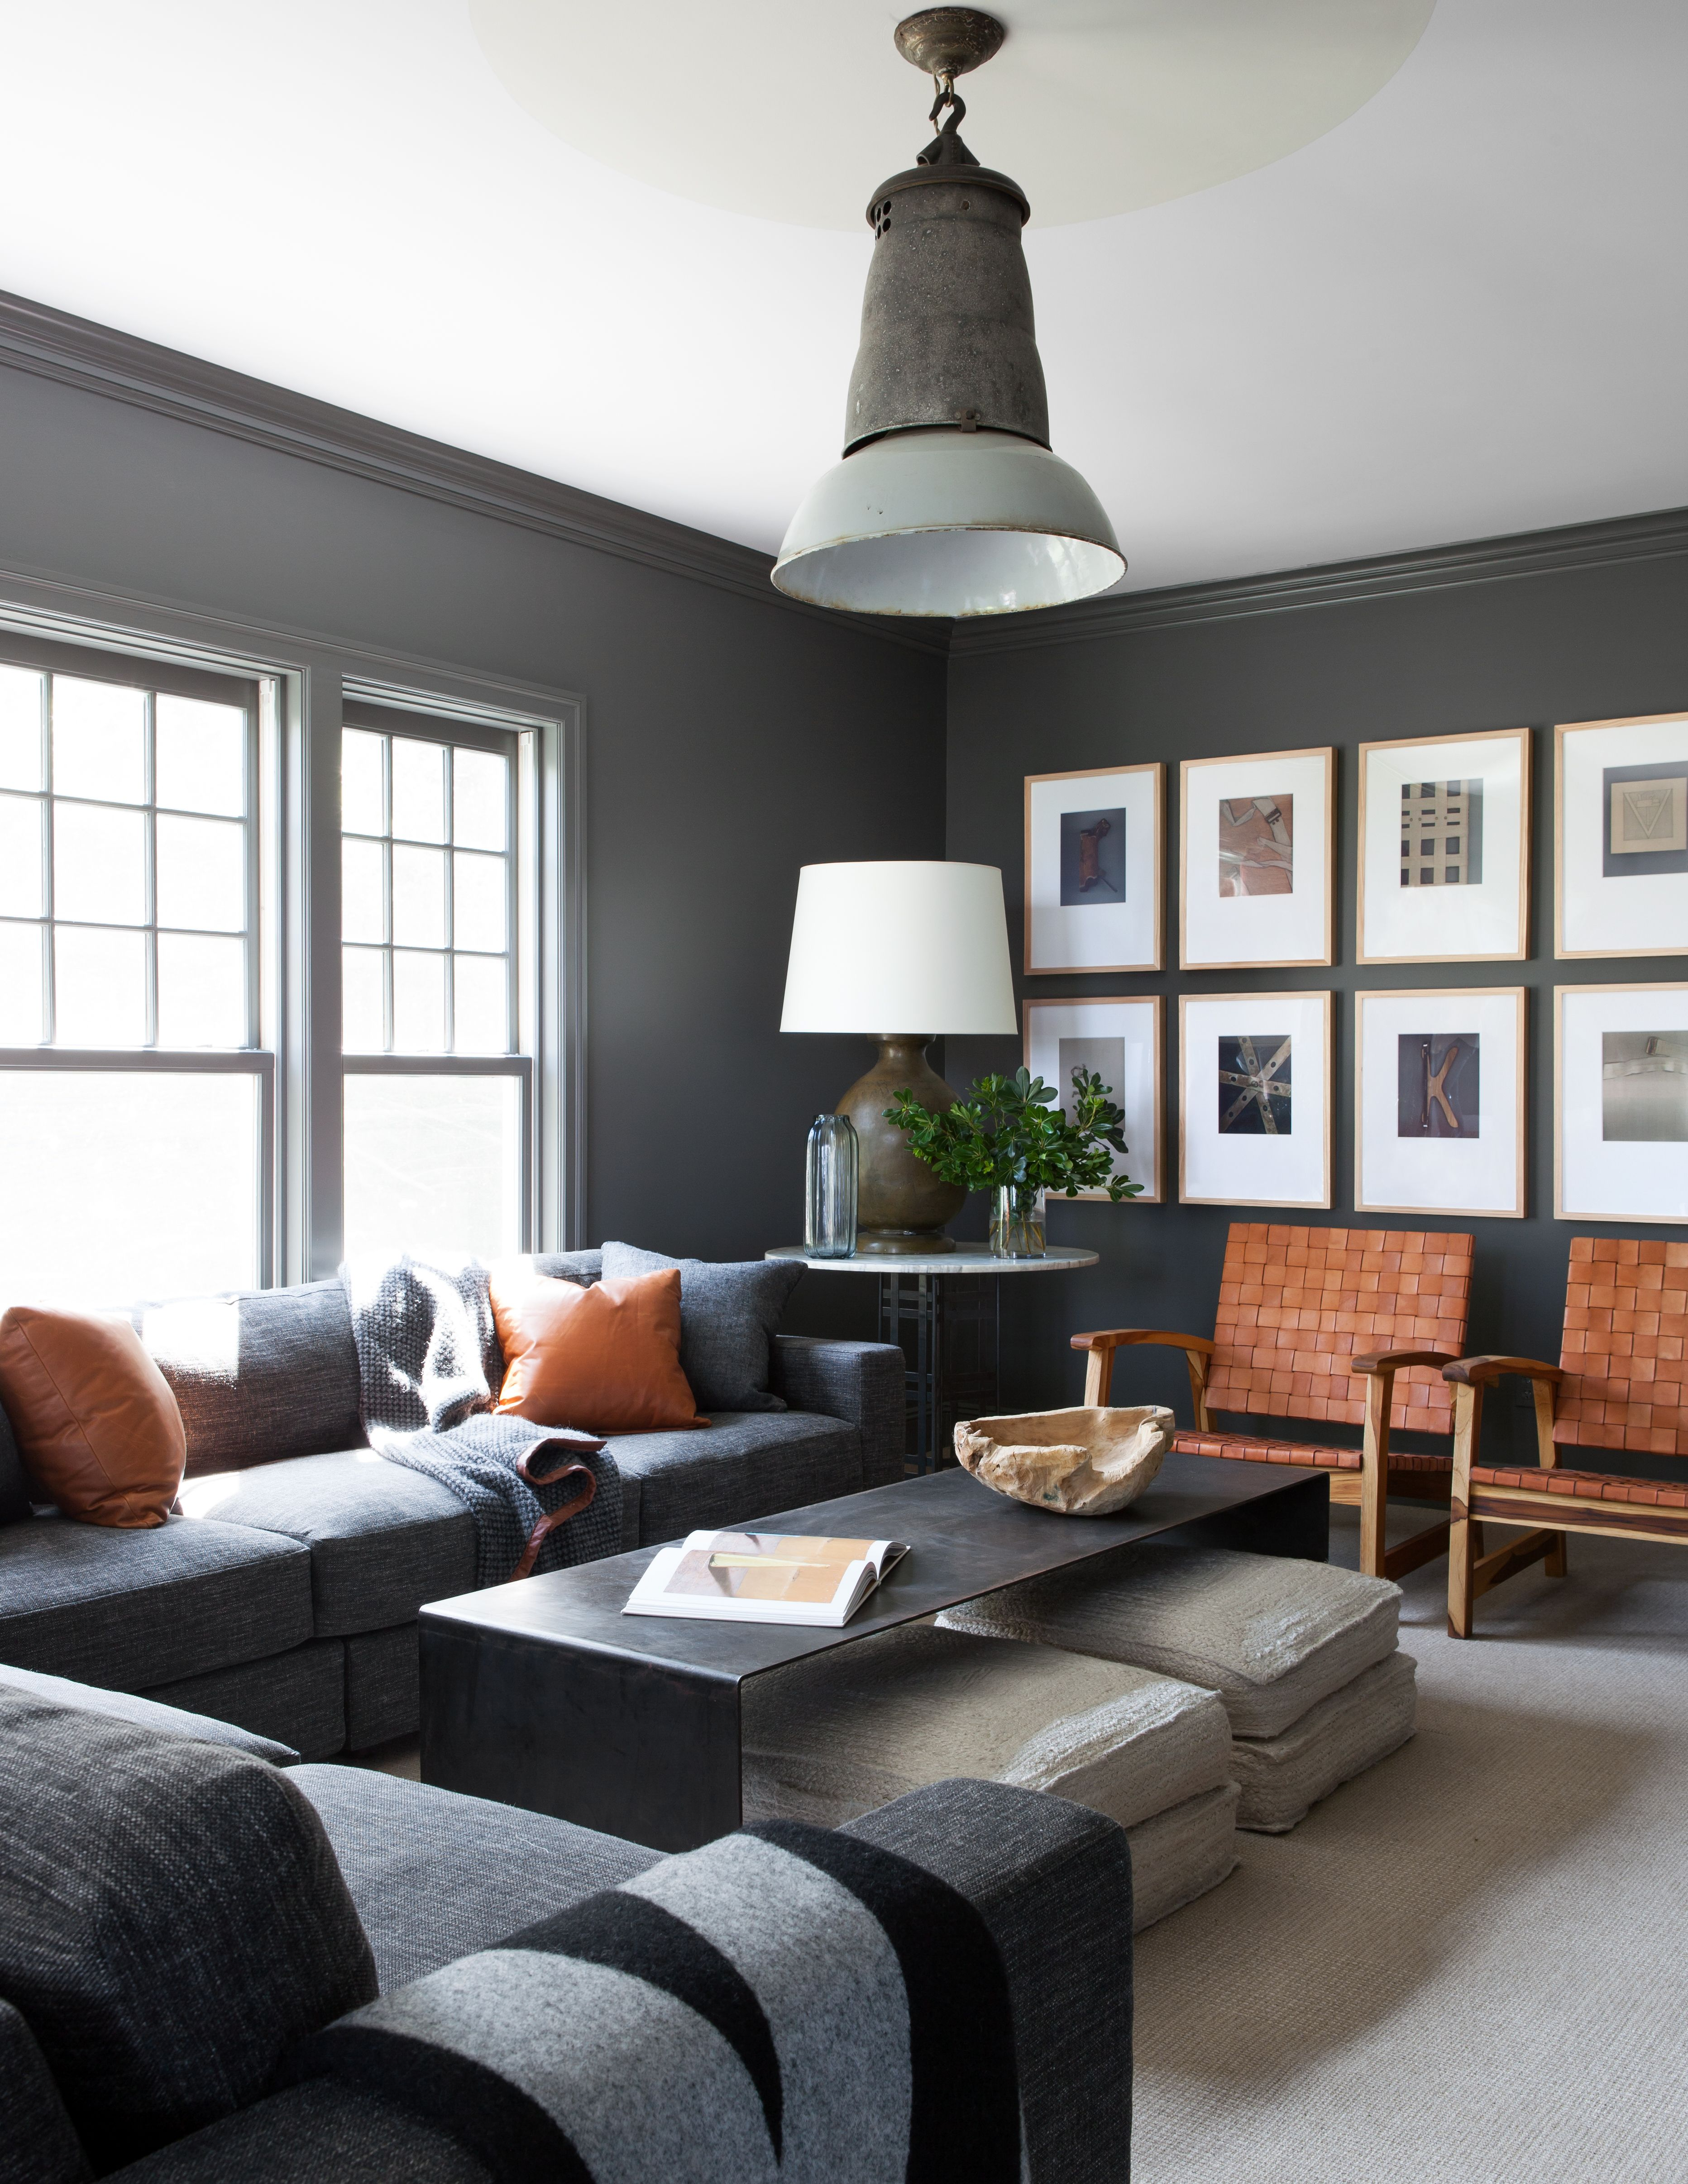 7 Designers Share Their Favorite Paint Colors For A Relaxing Home Masculine Living Rooms Living Room Grey Living Room Color Schemes #relaxing #living #room #colors